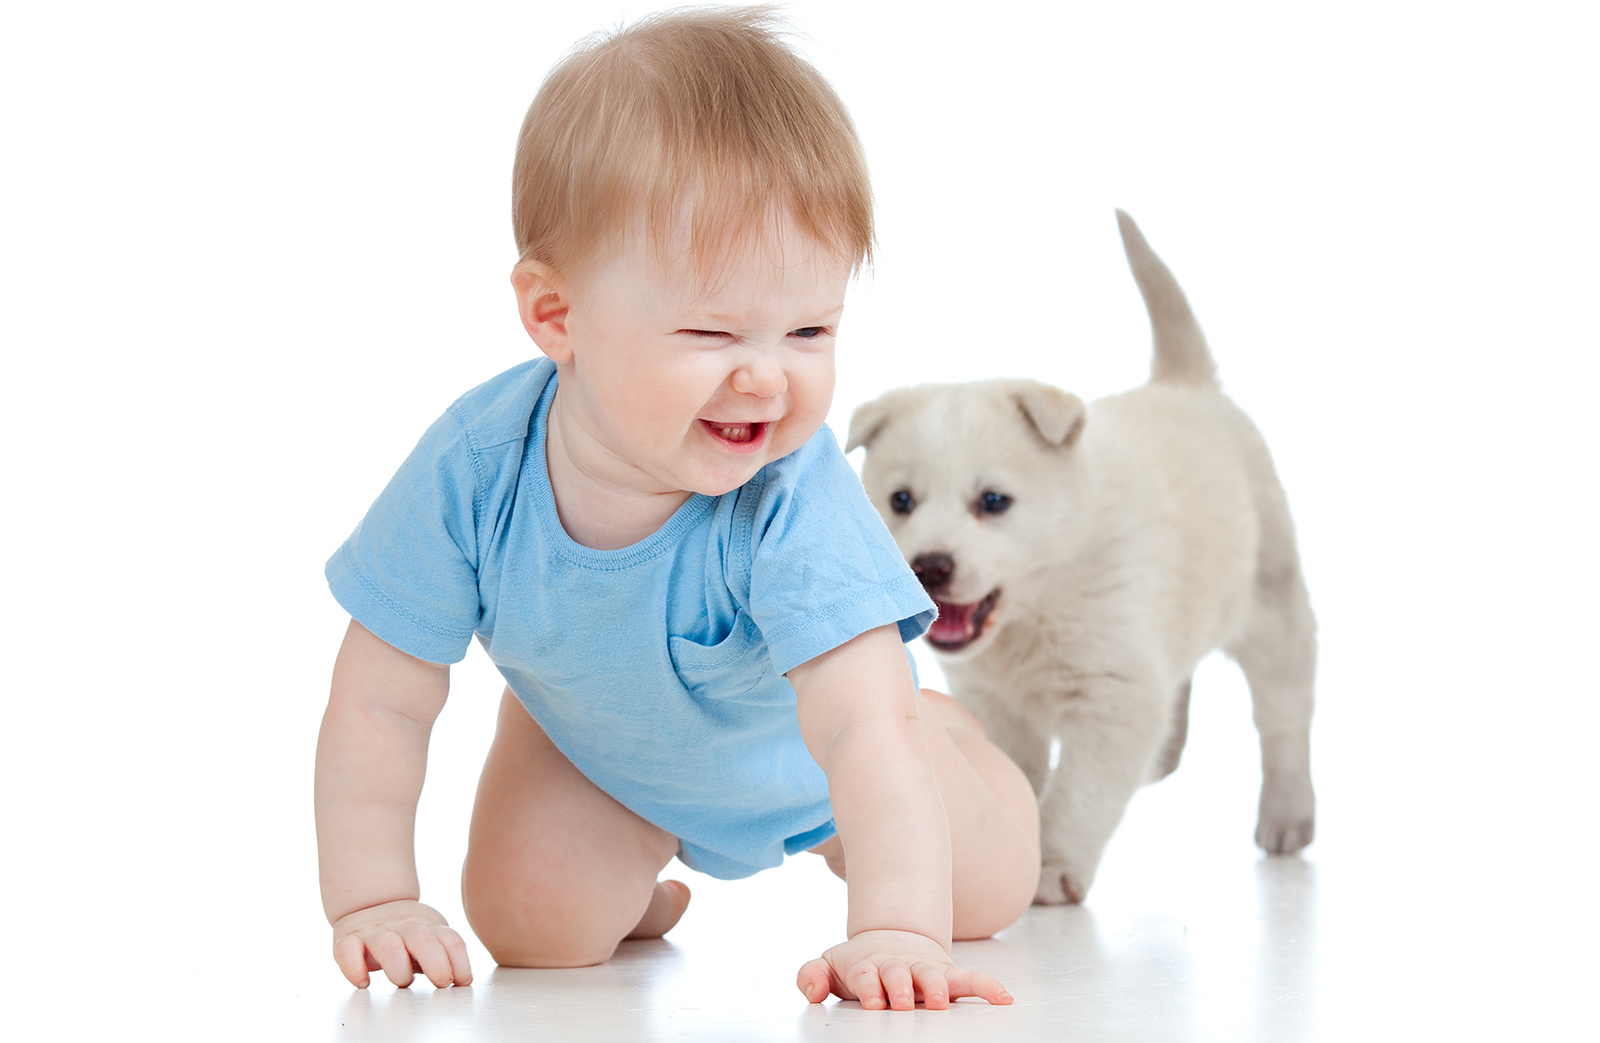 Services for Cleaning Pet Stains Professionally in NJ and PA